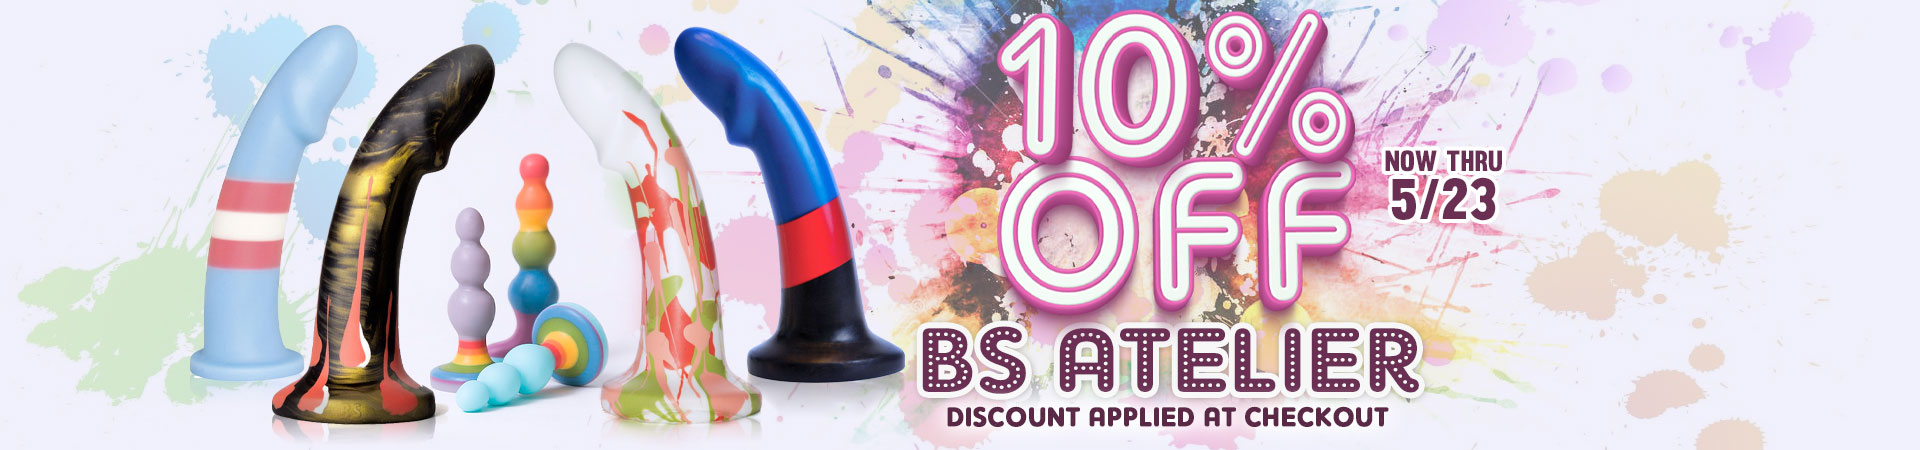 10% Off BS Atelier - Now Thru 5/23 - Discount Applied At Checkout